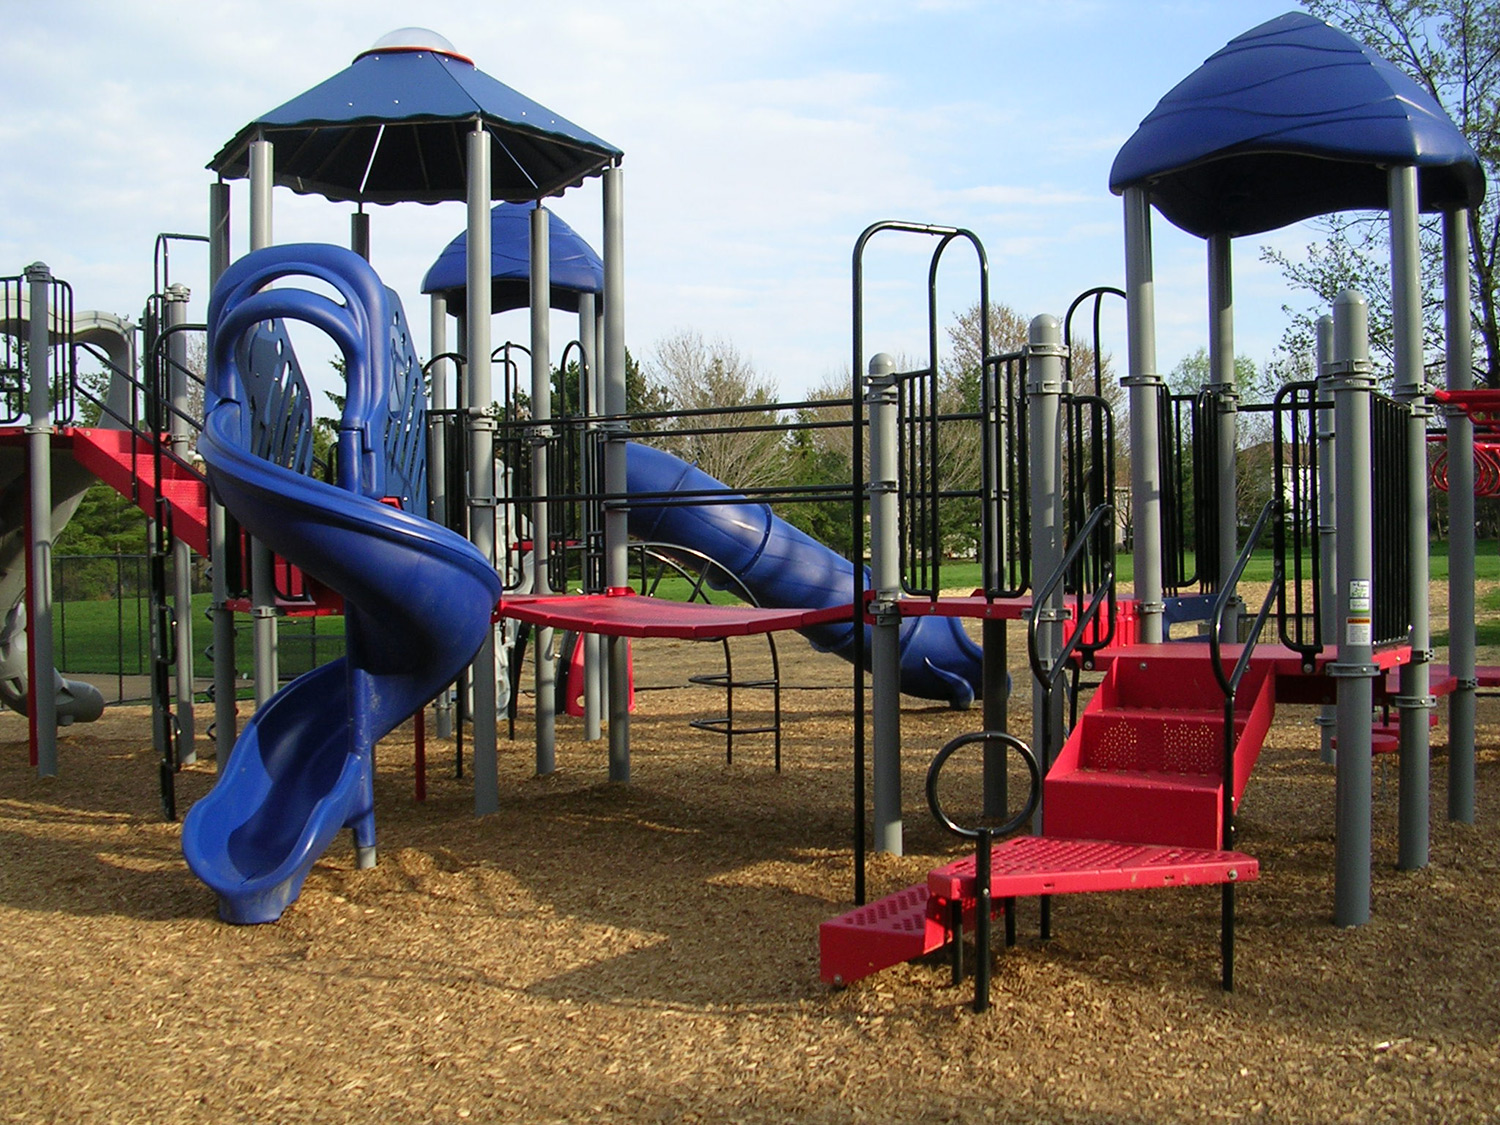 Both new play units are fully ADA approved and have transfer stations to allow use by special needs children.